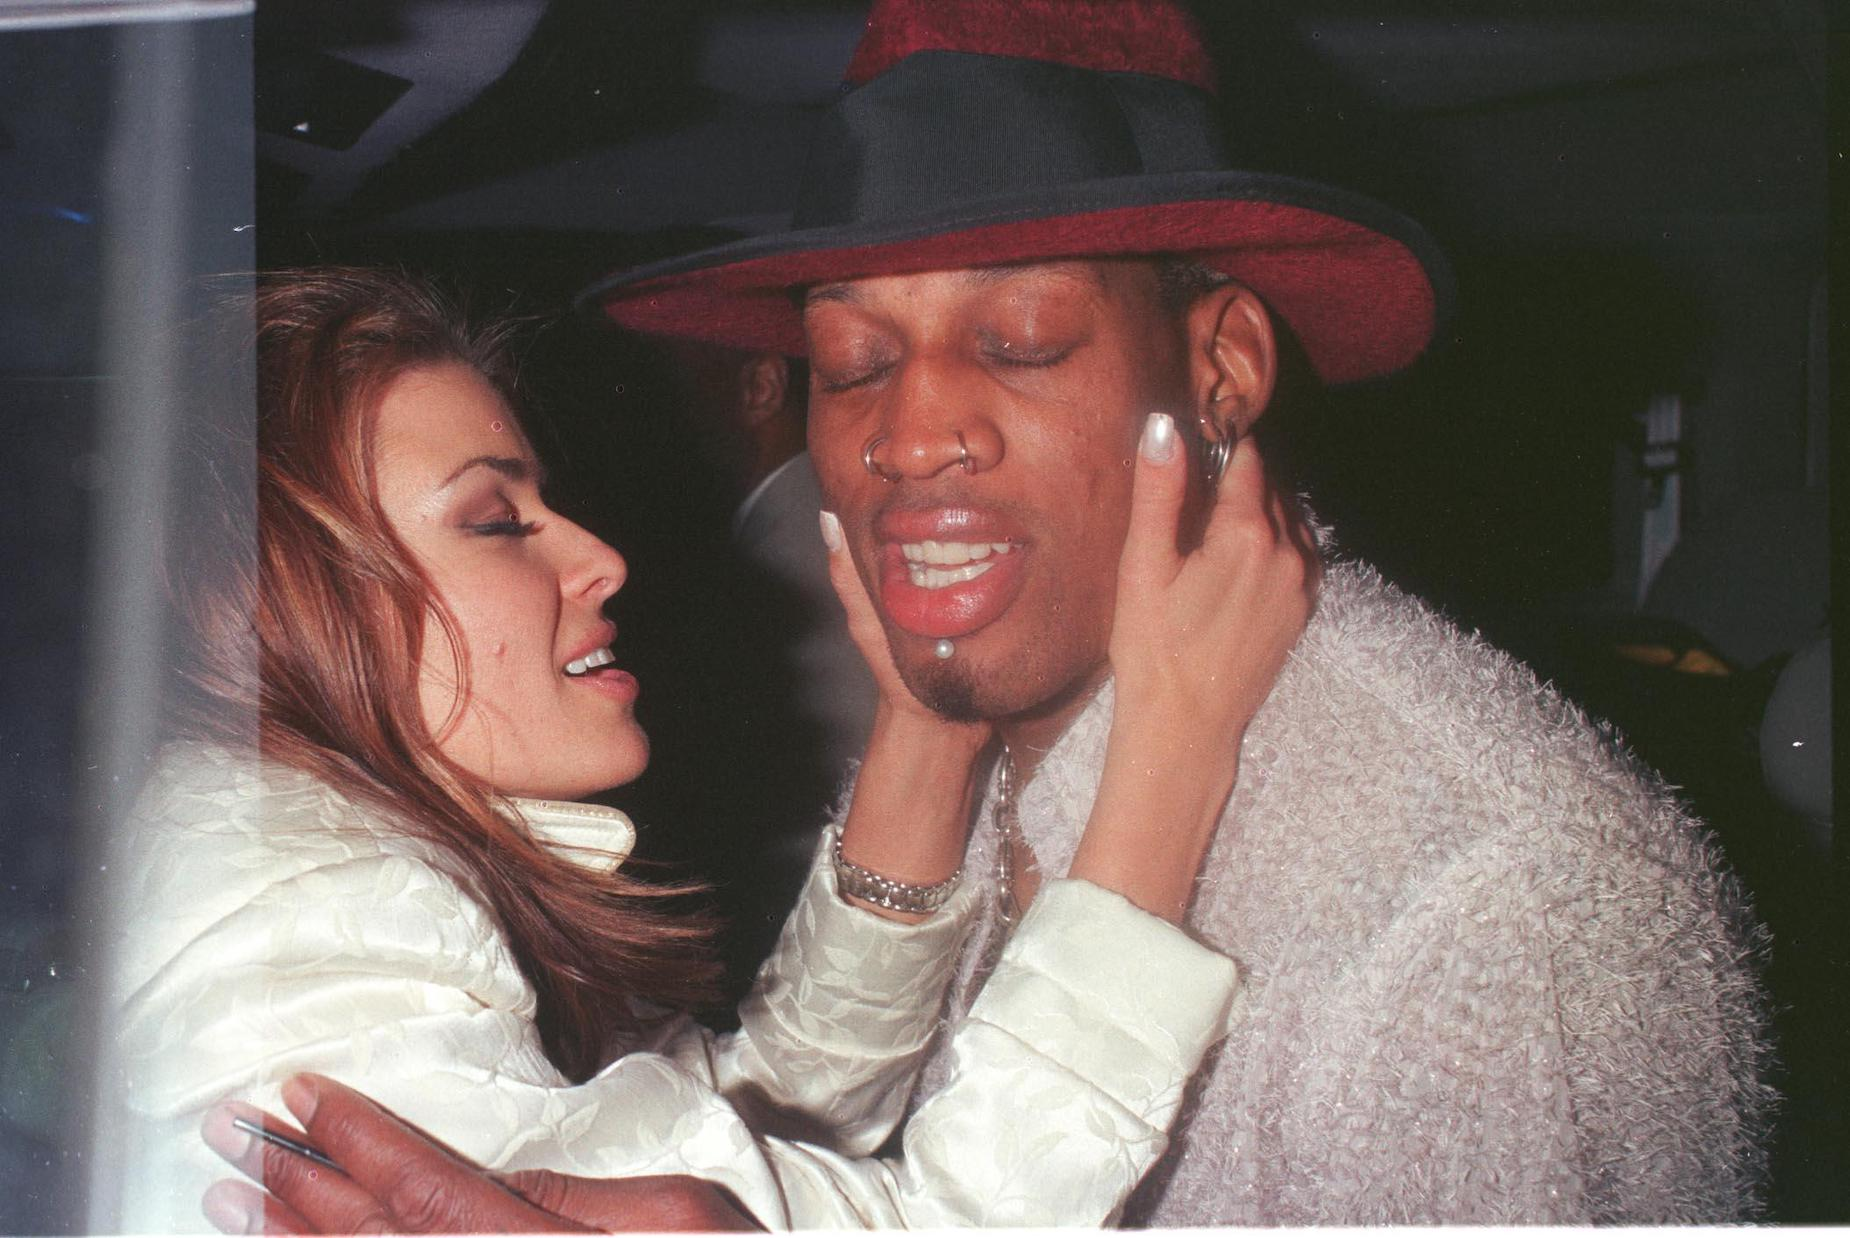 Dennis Rodman and Carmen Electra embrace in Beverly Hills during their time together.